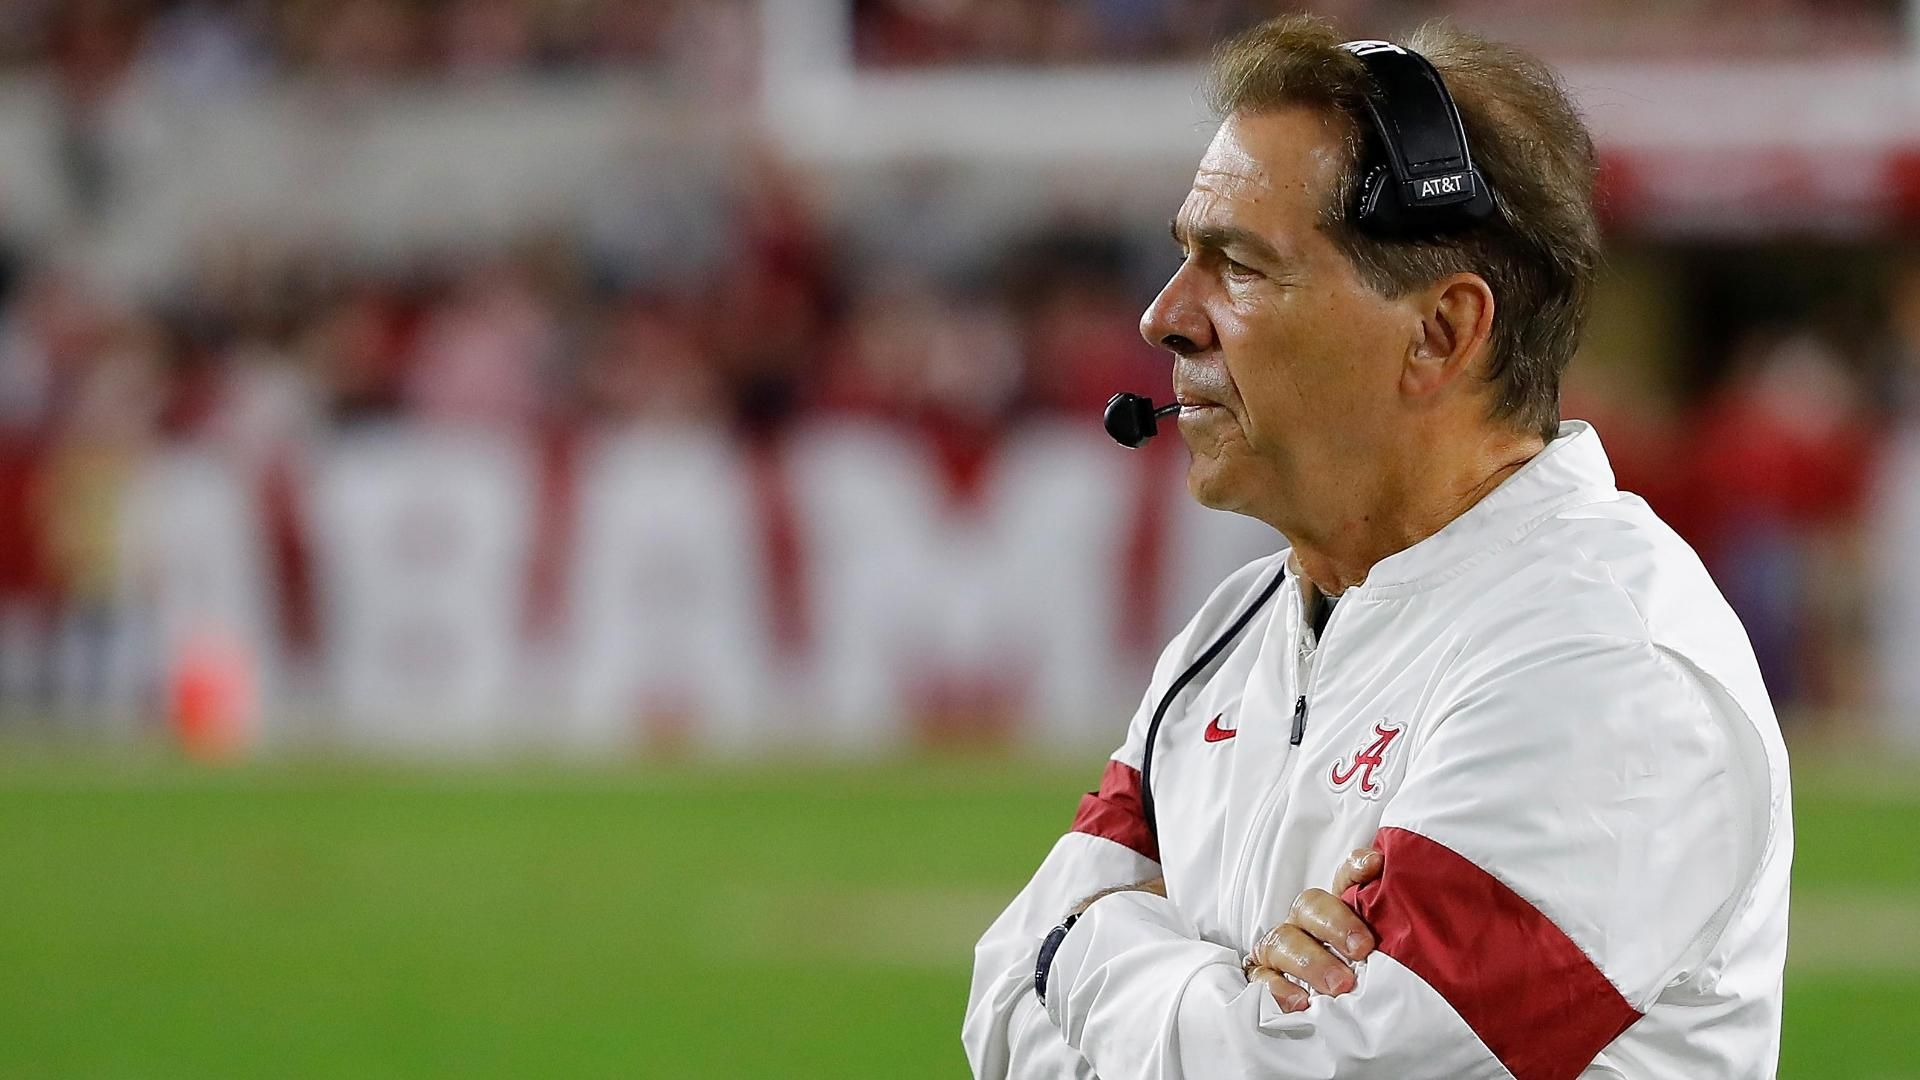 Saban keeps ship afloat despite injuries